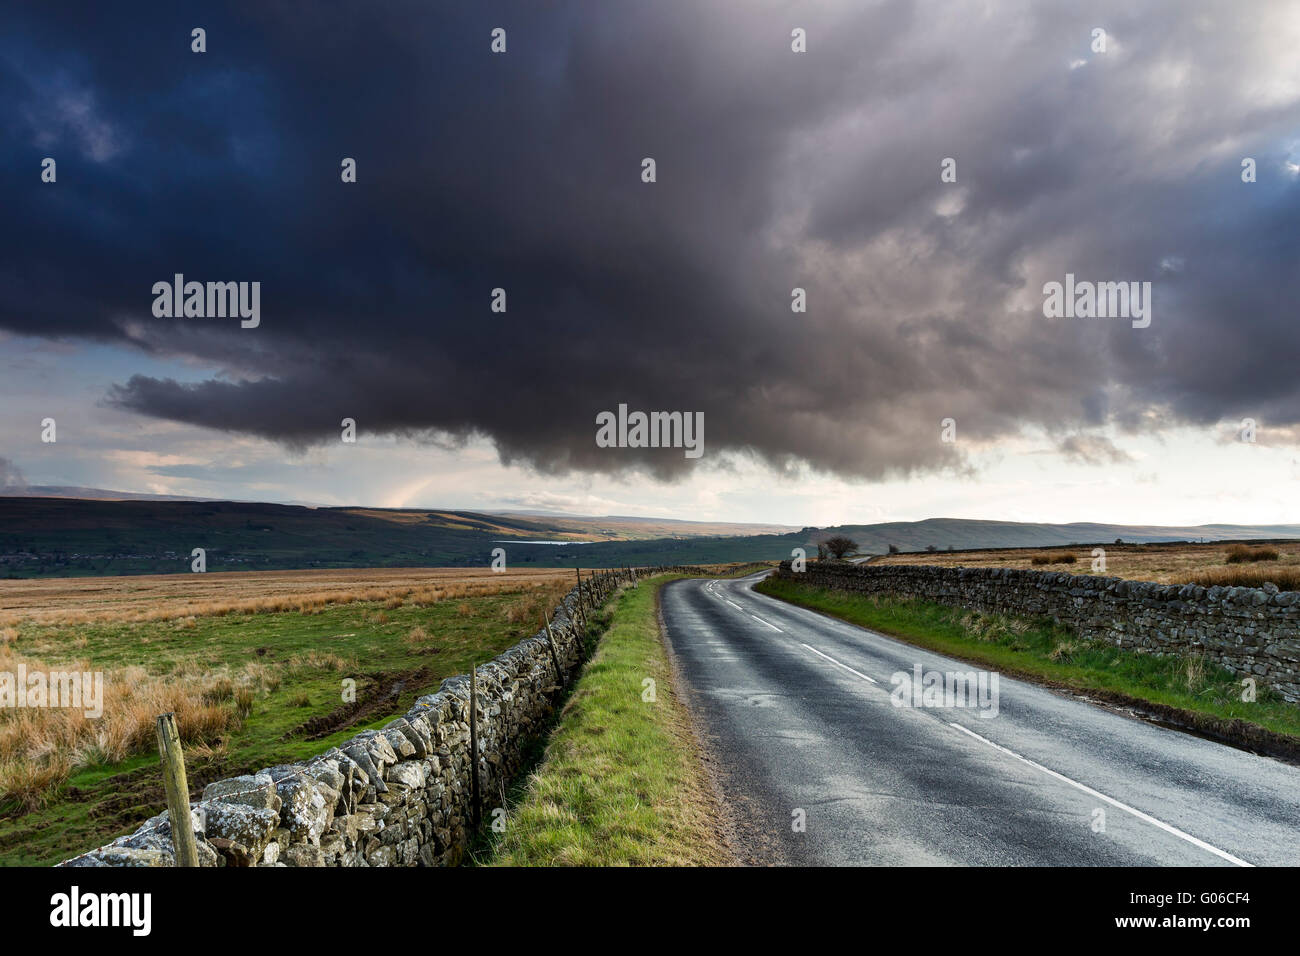 The View Across Teesdale Towards Lunedale from the Middle End Road Below Monks Moor, Teesdale County Durham, UK Stock Photo